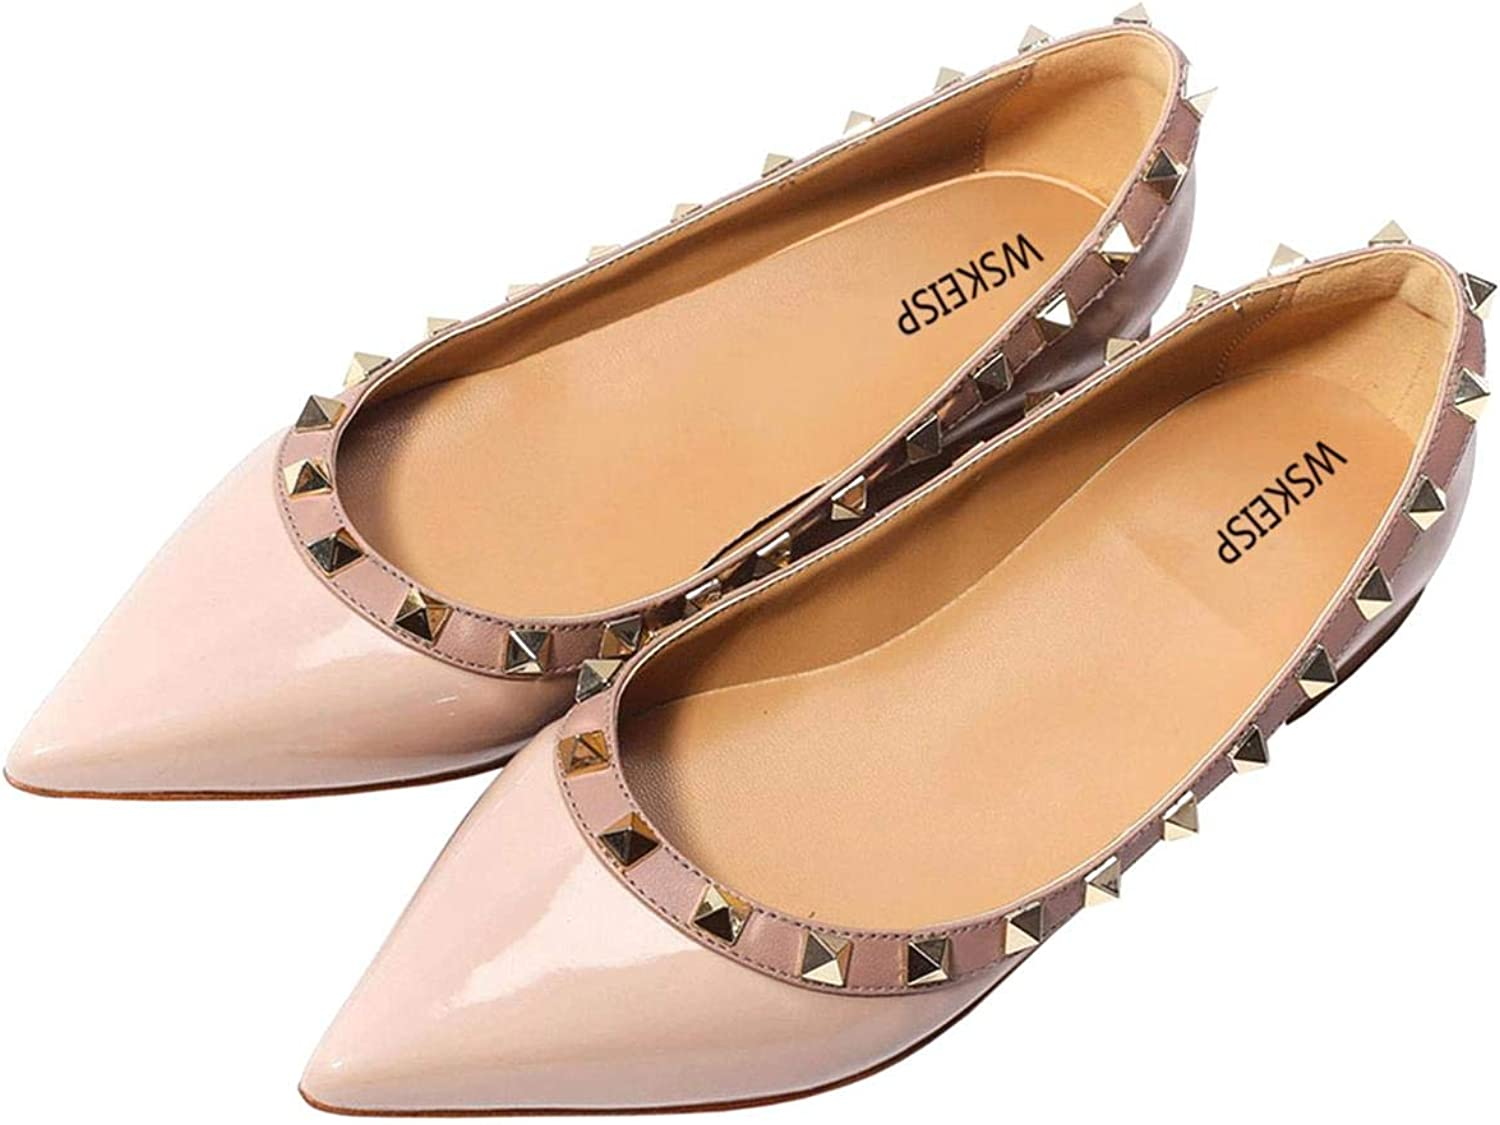 WSKEISP Women's Rivets Studded Flats shoes Slip on Pointed Toe Wedding Dress shoes